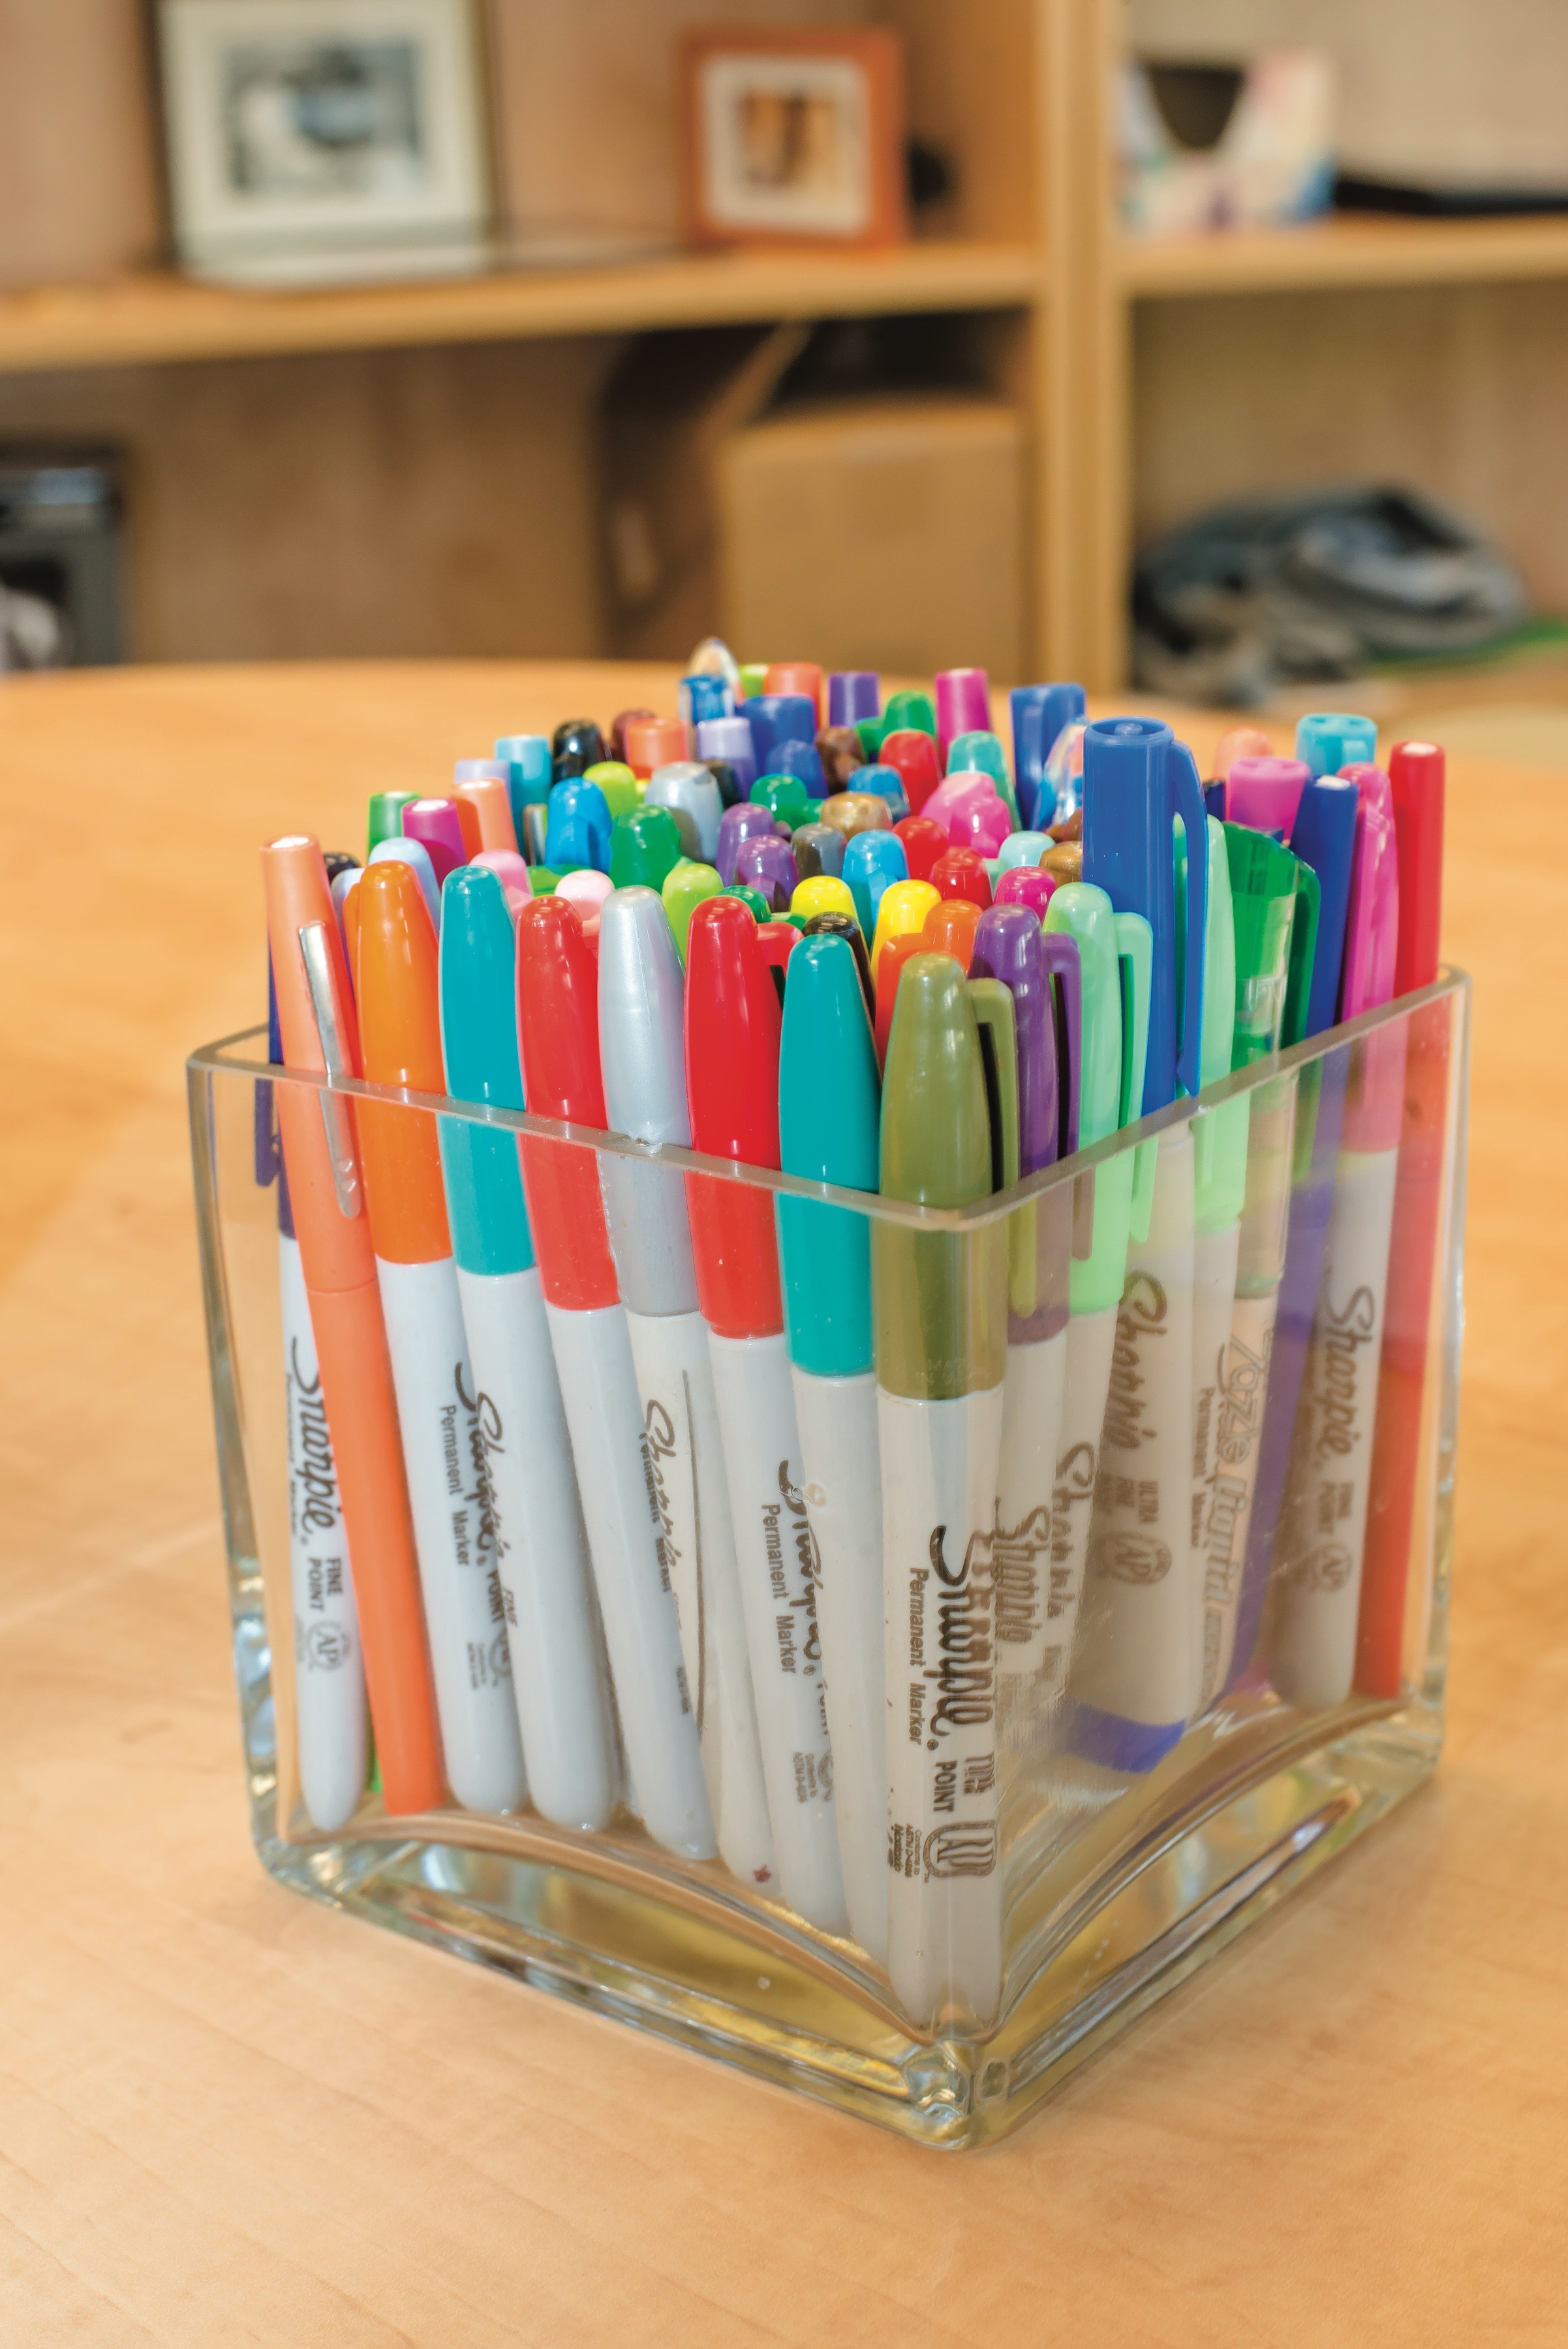 Colorful writing utensils